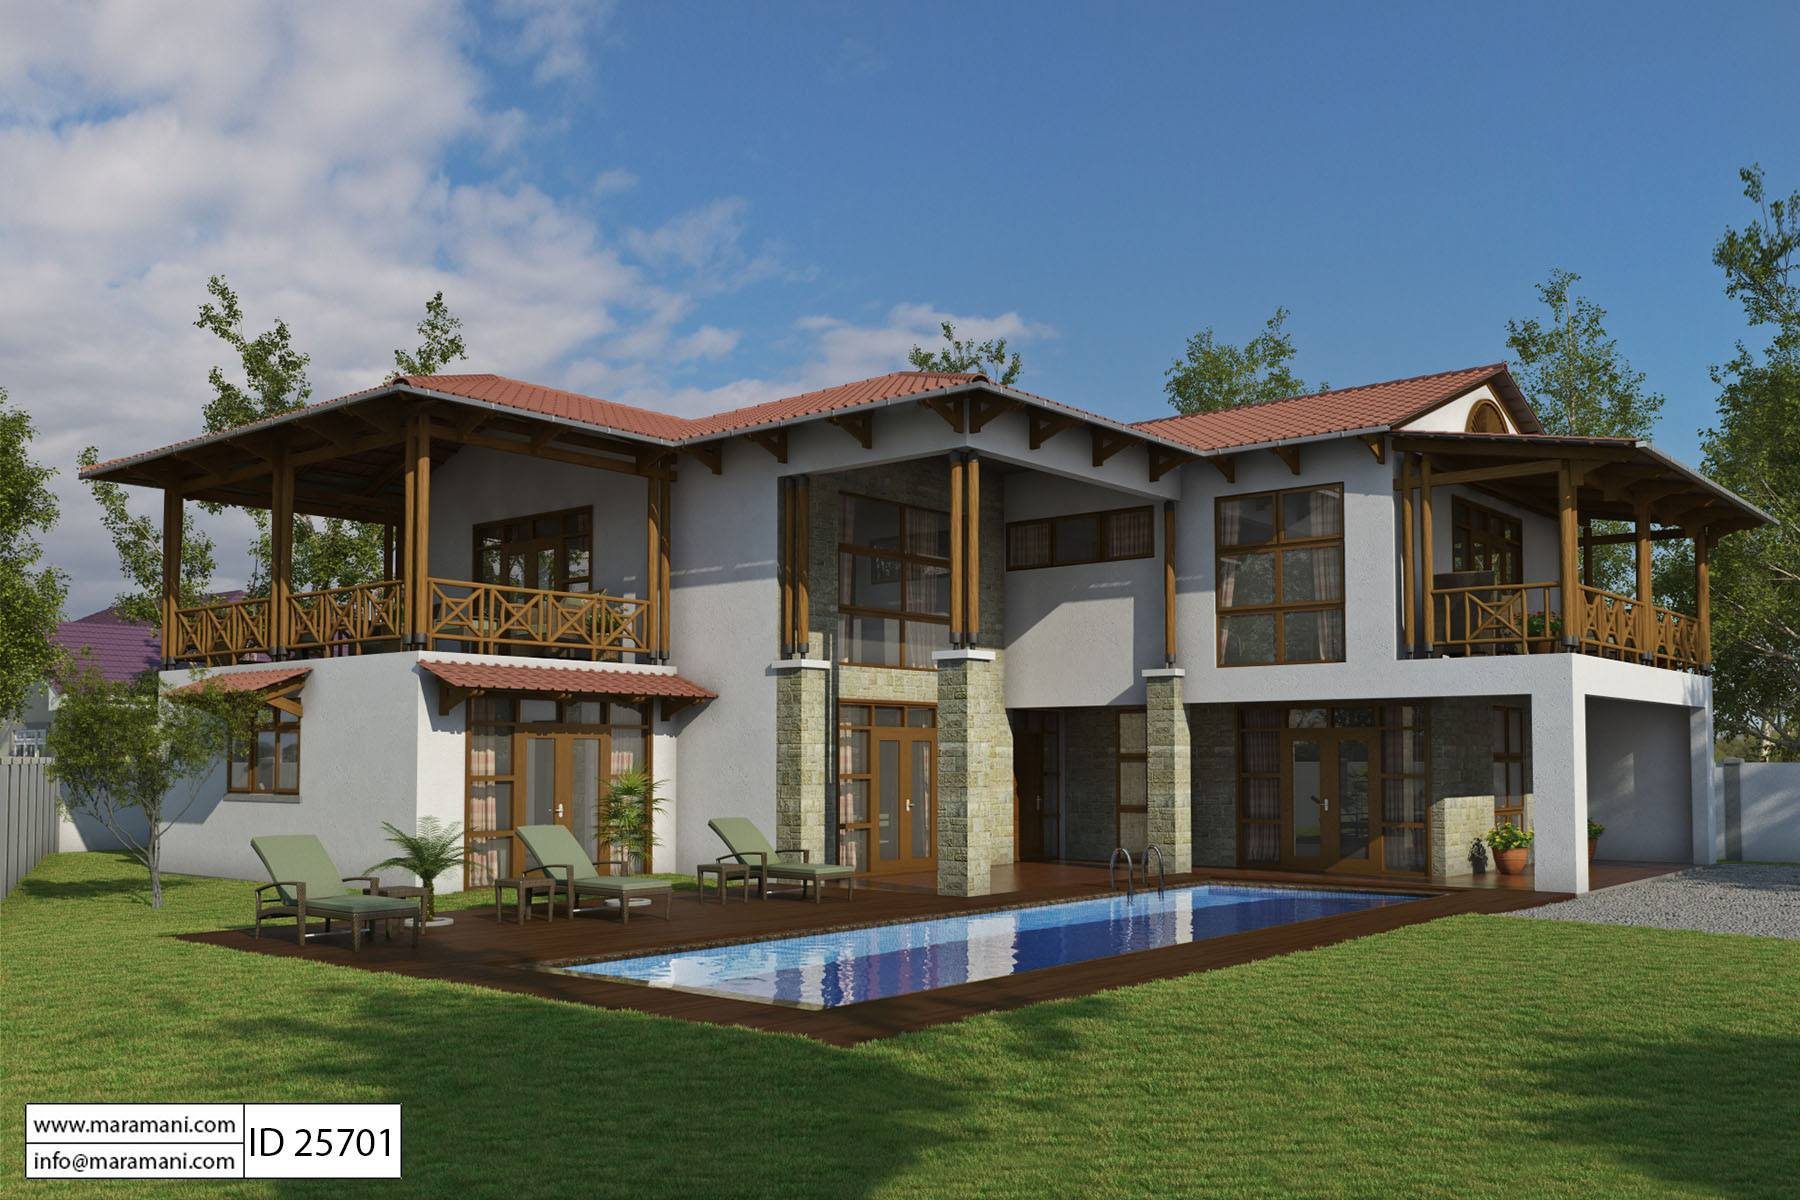 Merveilleux 5 Bedroom House Design   ID 25701